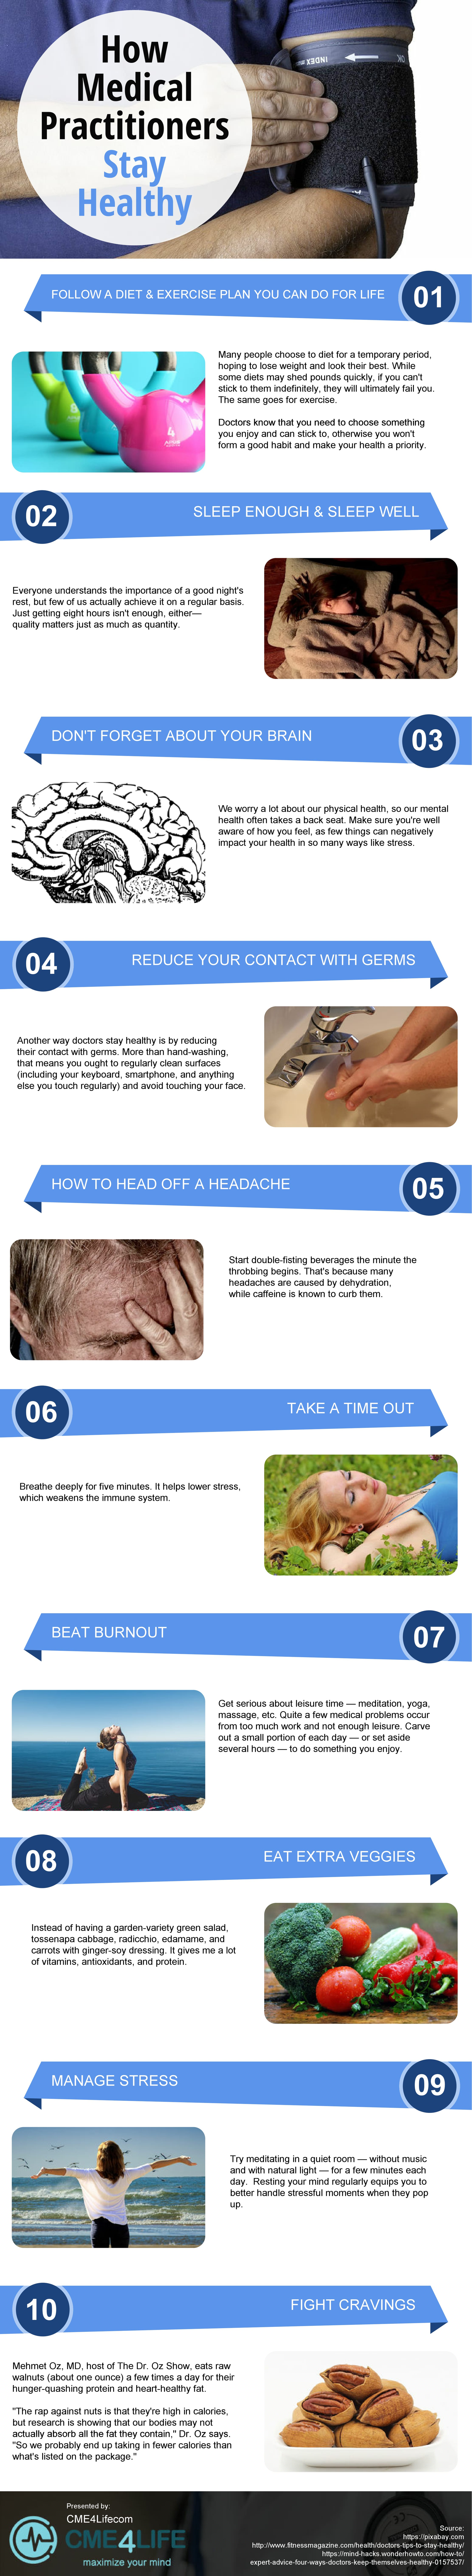 10 Things Doctors Do To Stay Healthy - Infographic